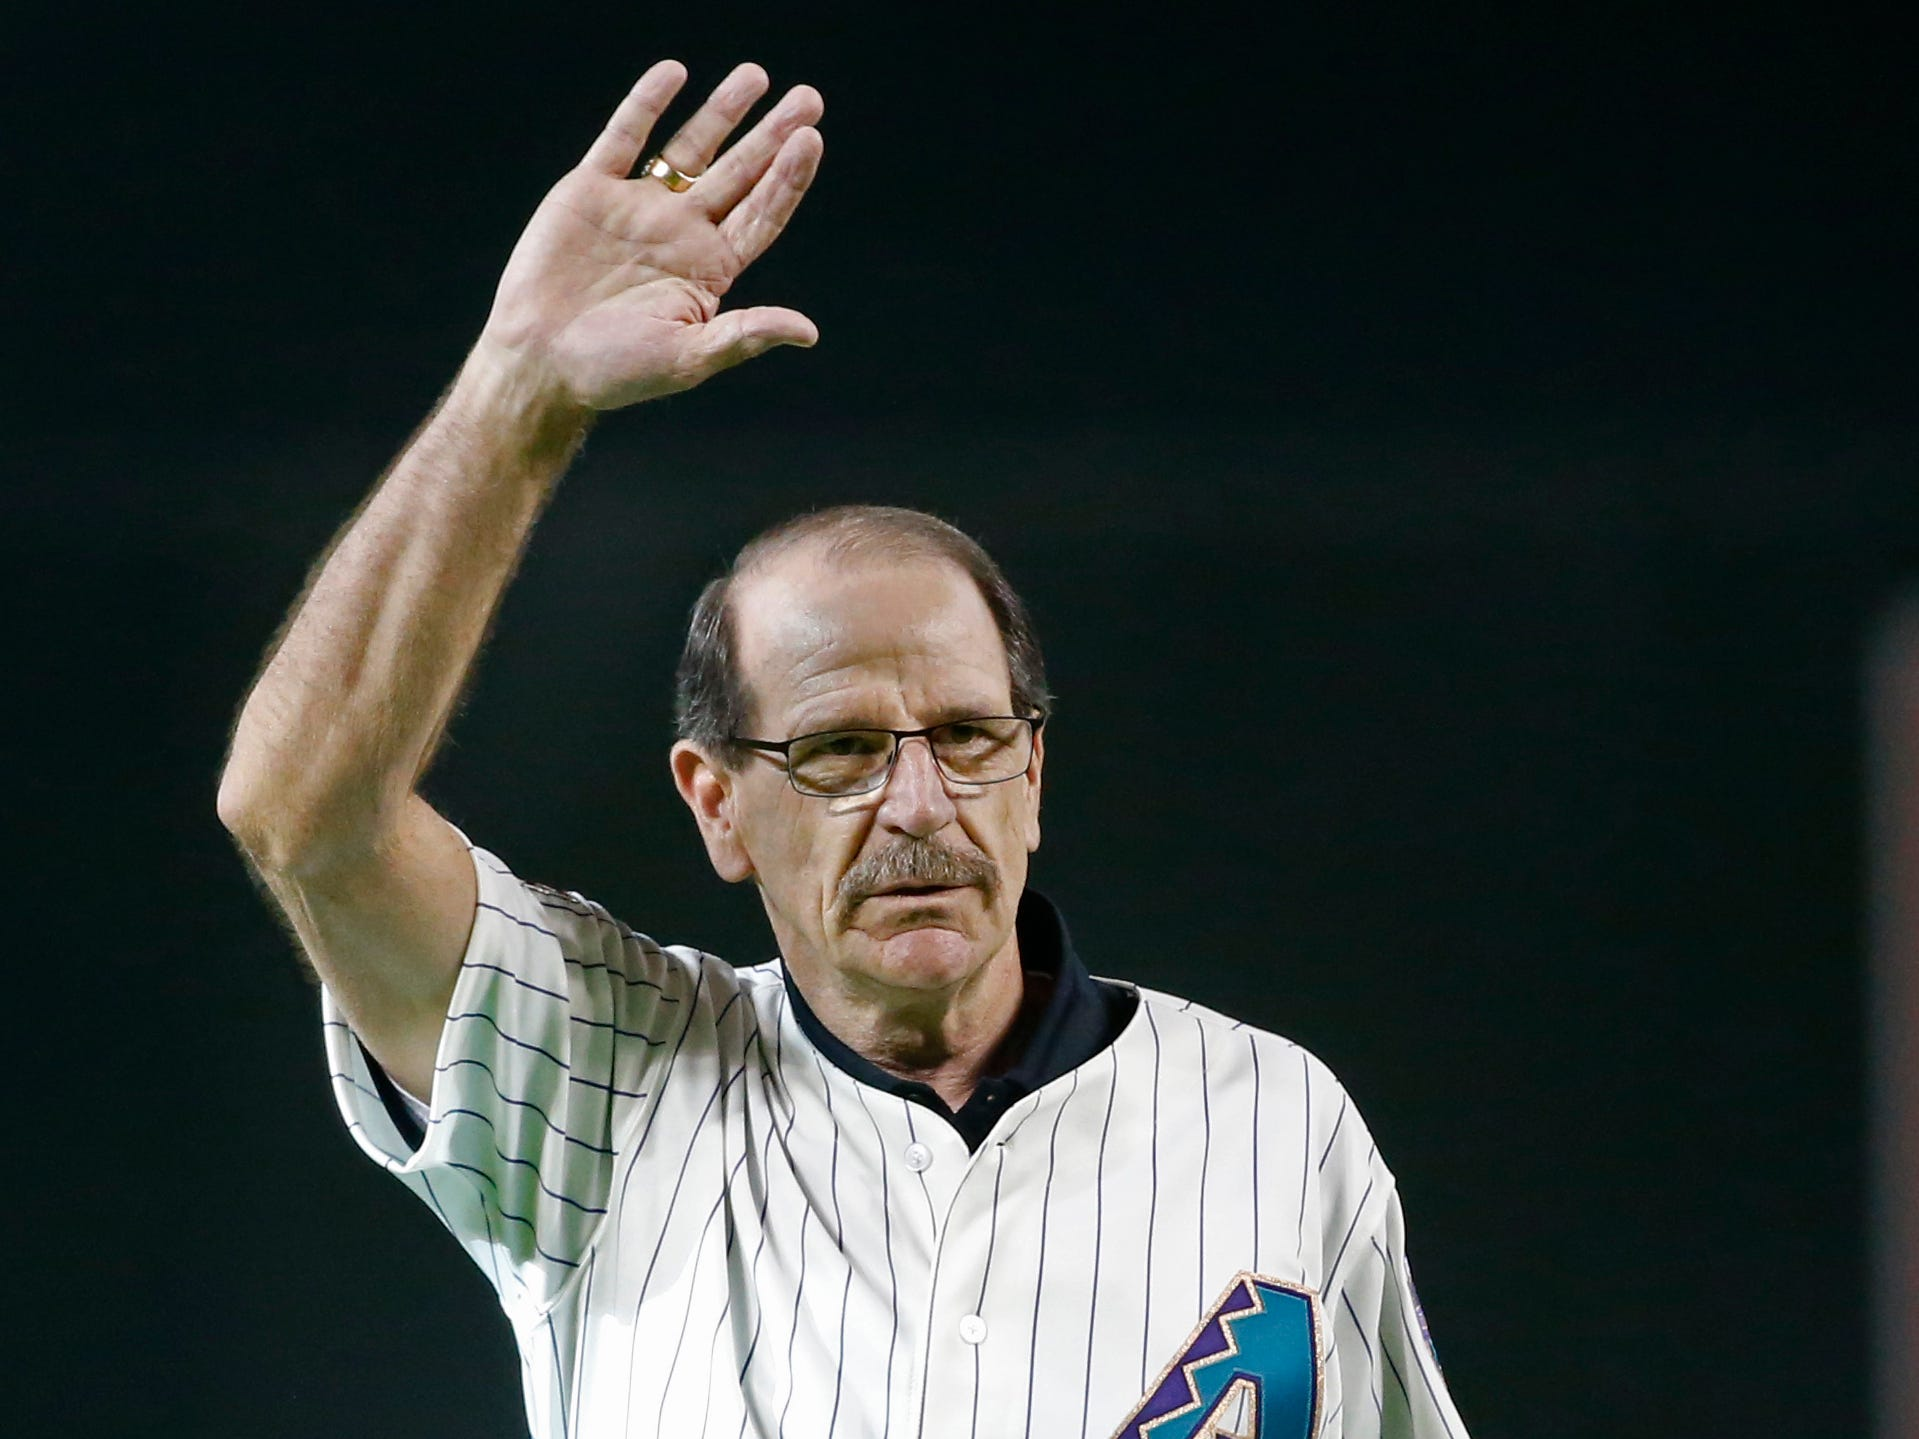 Former Diamondbacks manager Bob Brenly waves to fans during a ceremony some of the best players and managers of the past 20 years before a Diamondbacks game at Chase Field in Phoenix, Ariz. on Aug. 4, 2018.